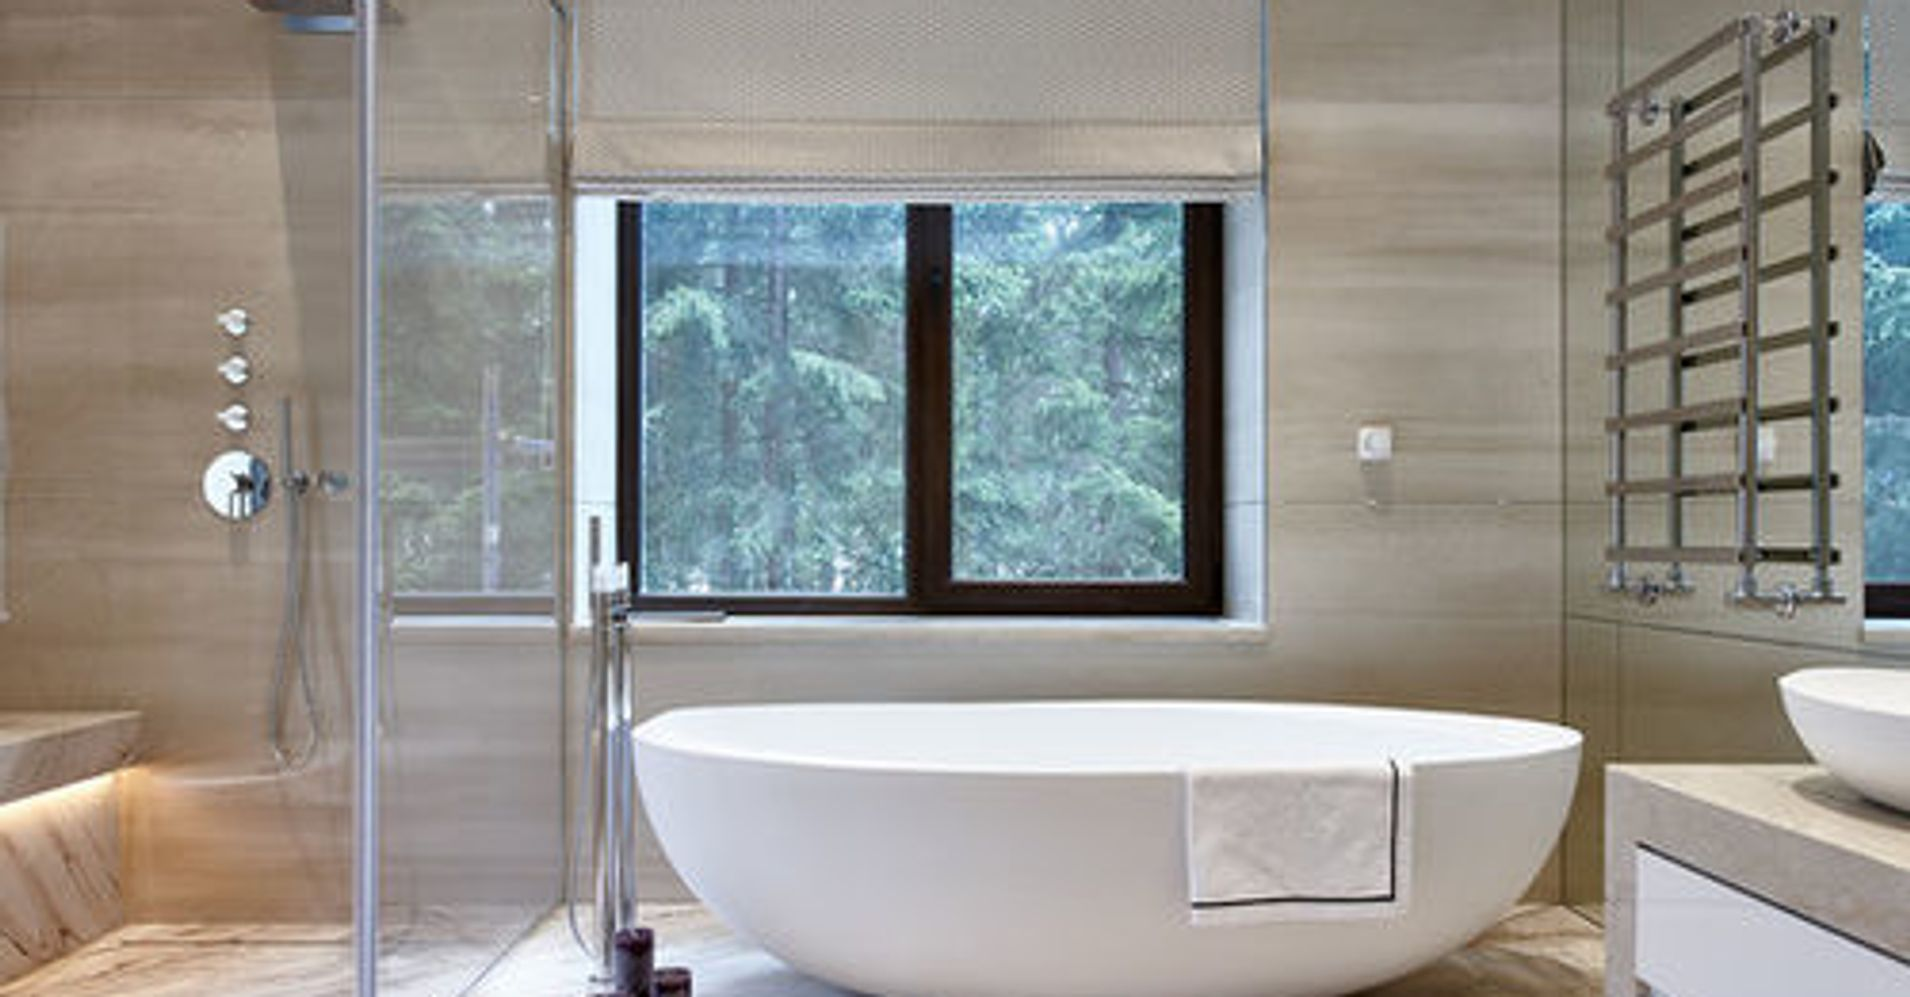 Should You Keep or Ditch the Tub? | HuffPost